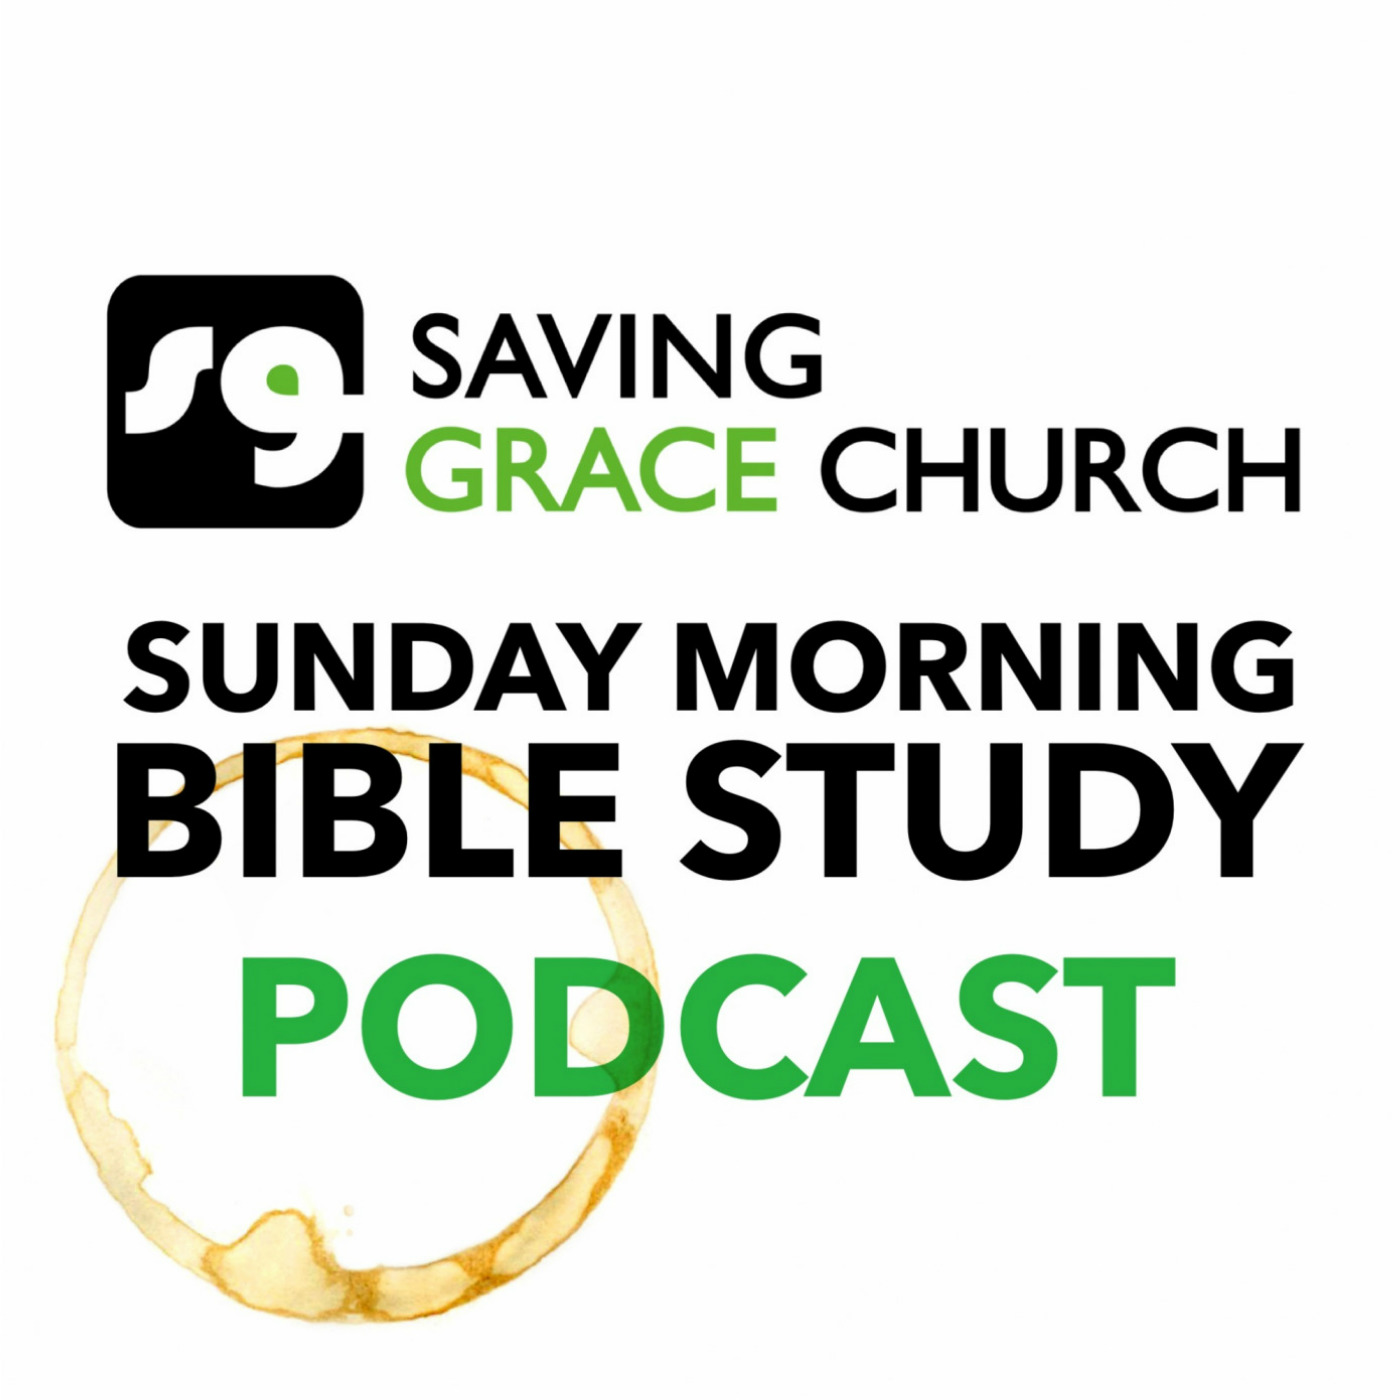 Saving Grace Church Sunday Morning Bible Study